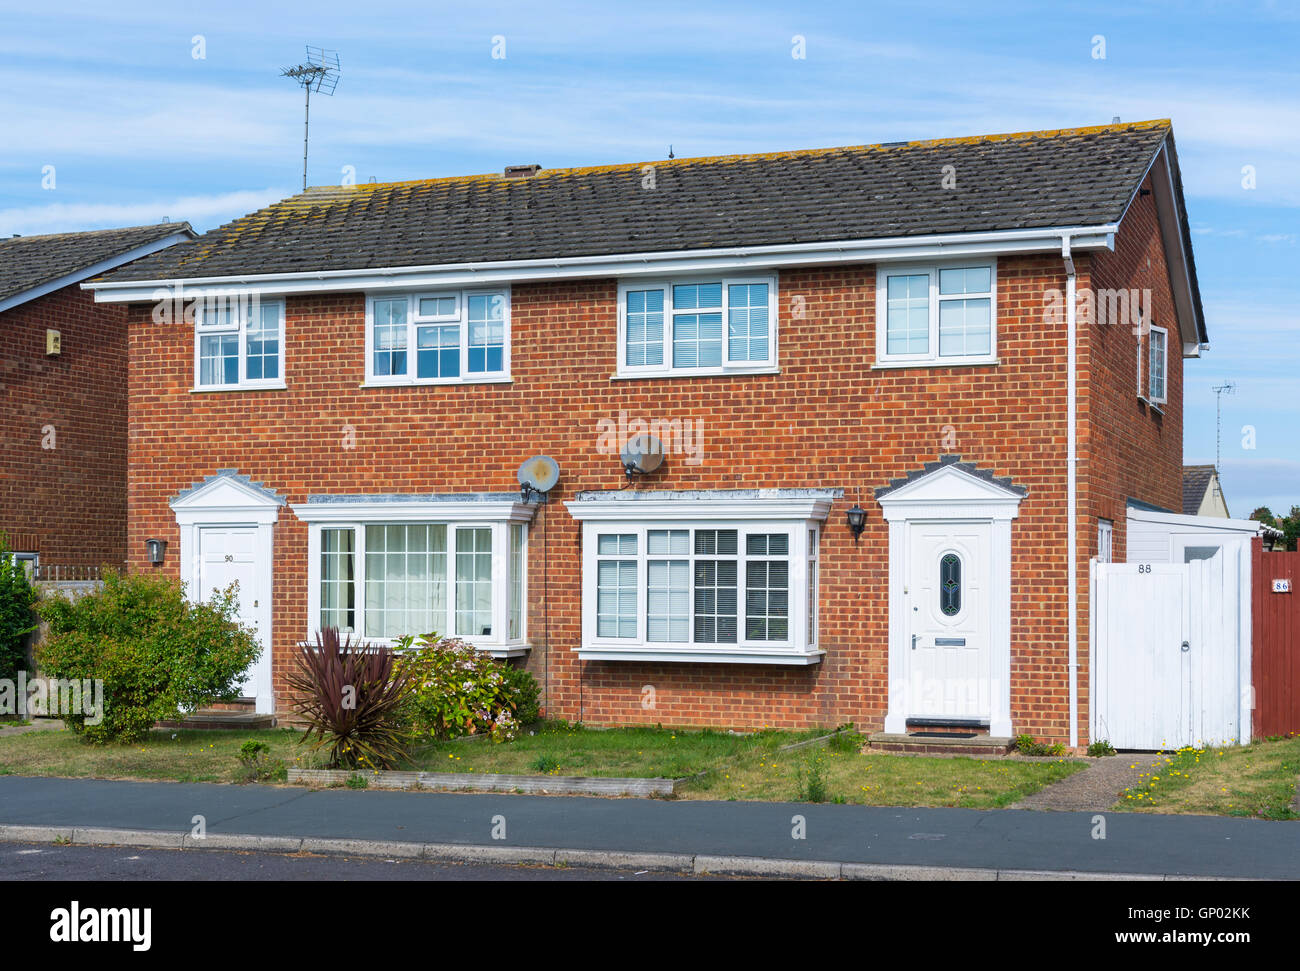 Semi detached modern brick house in the UK. - Stock Image